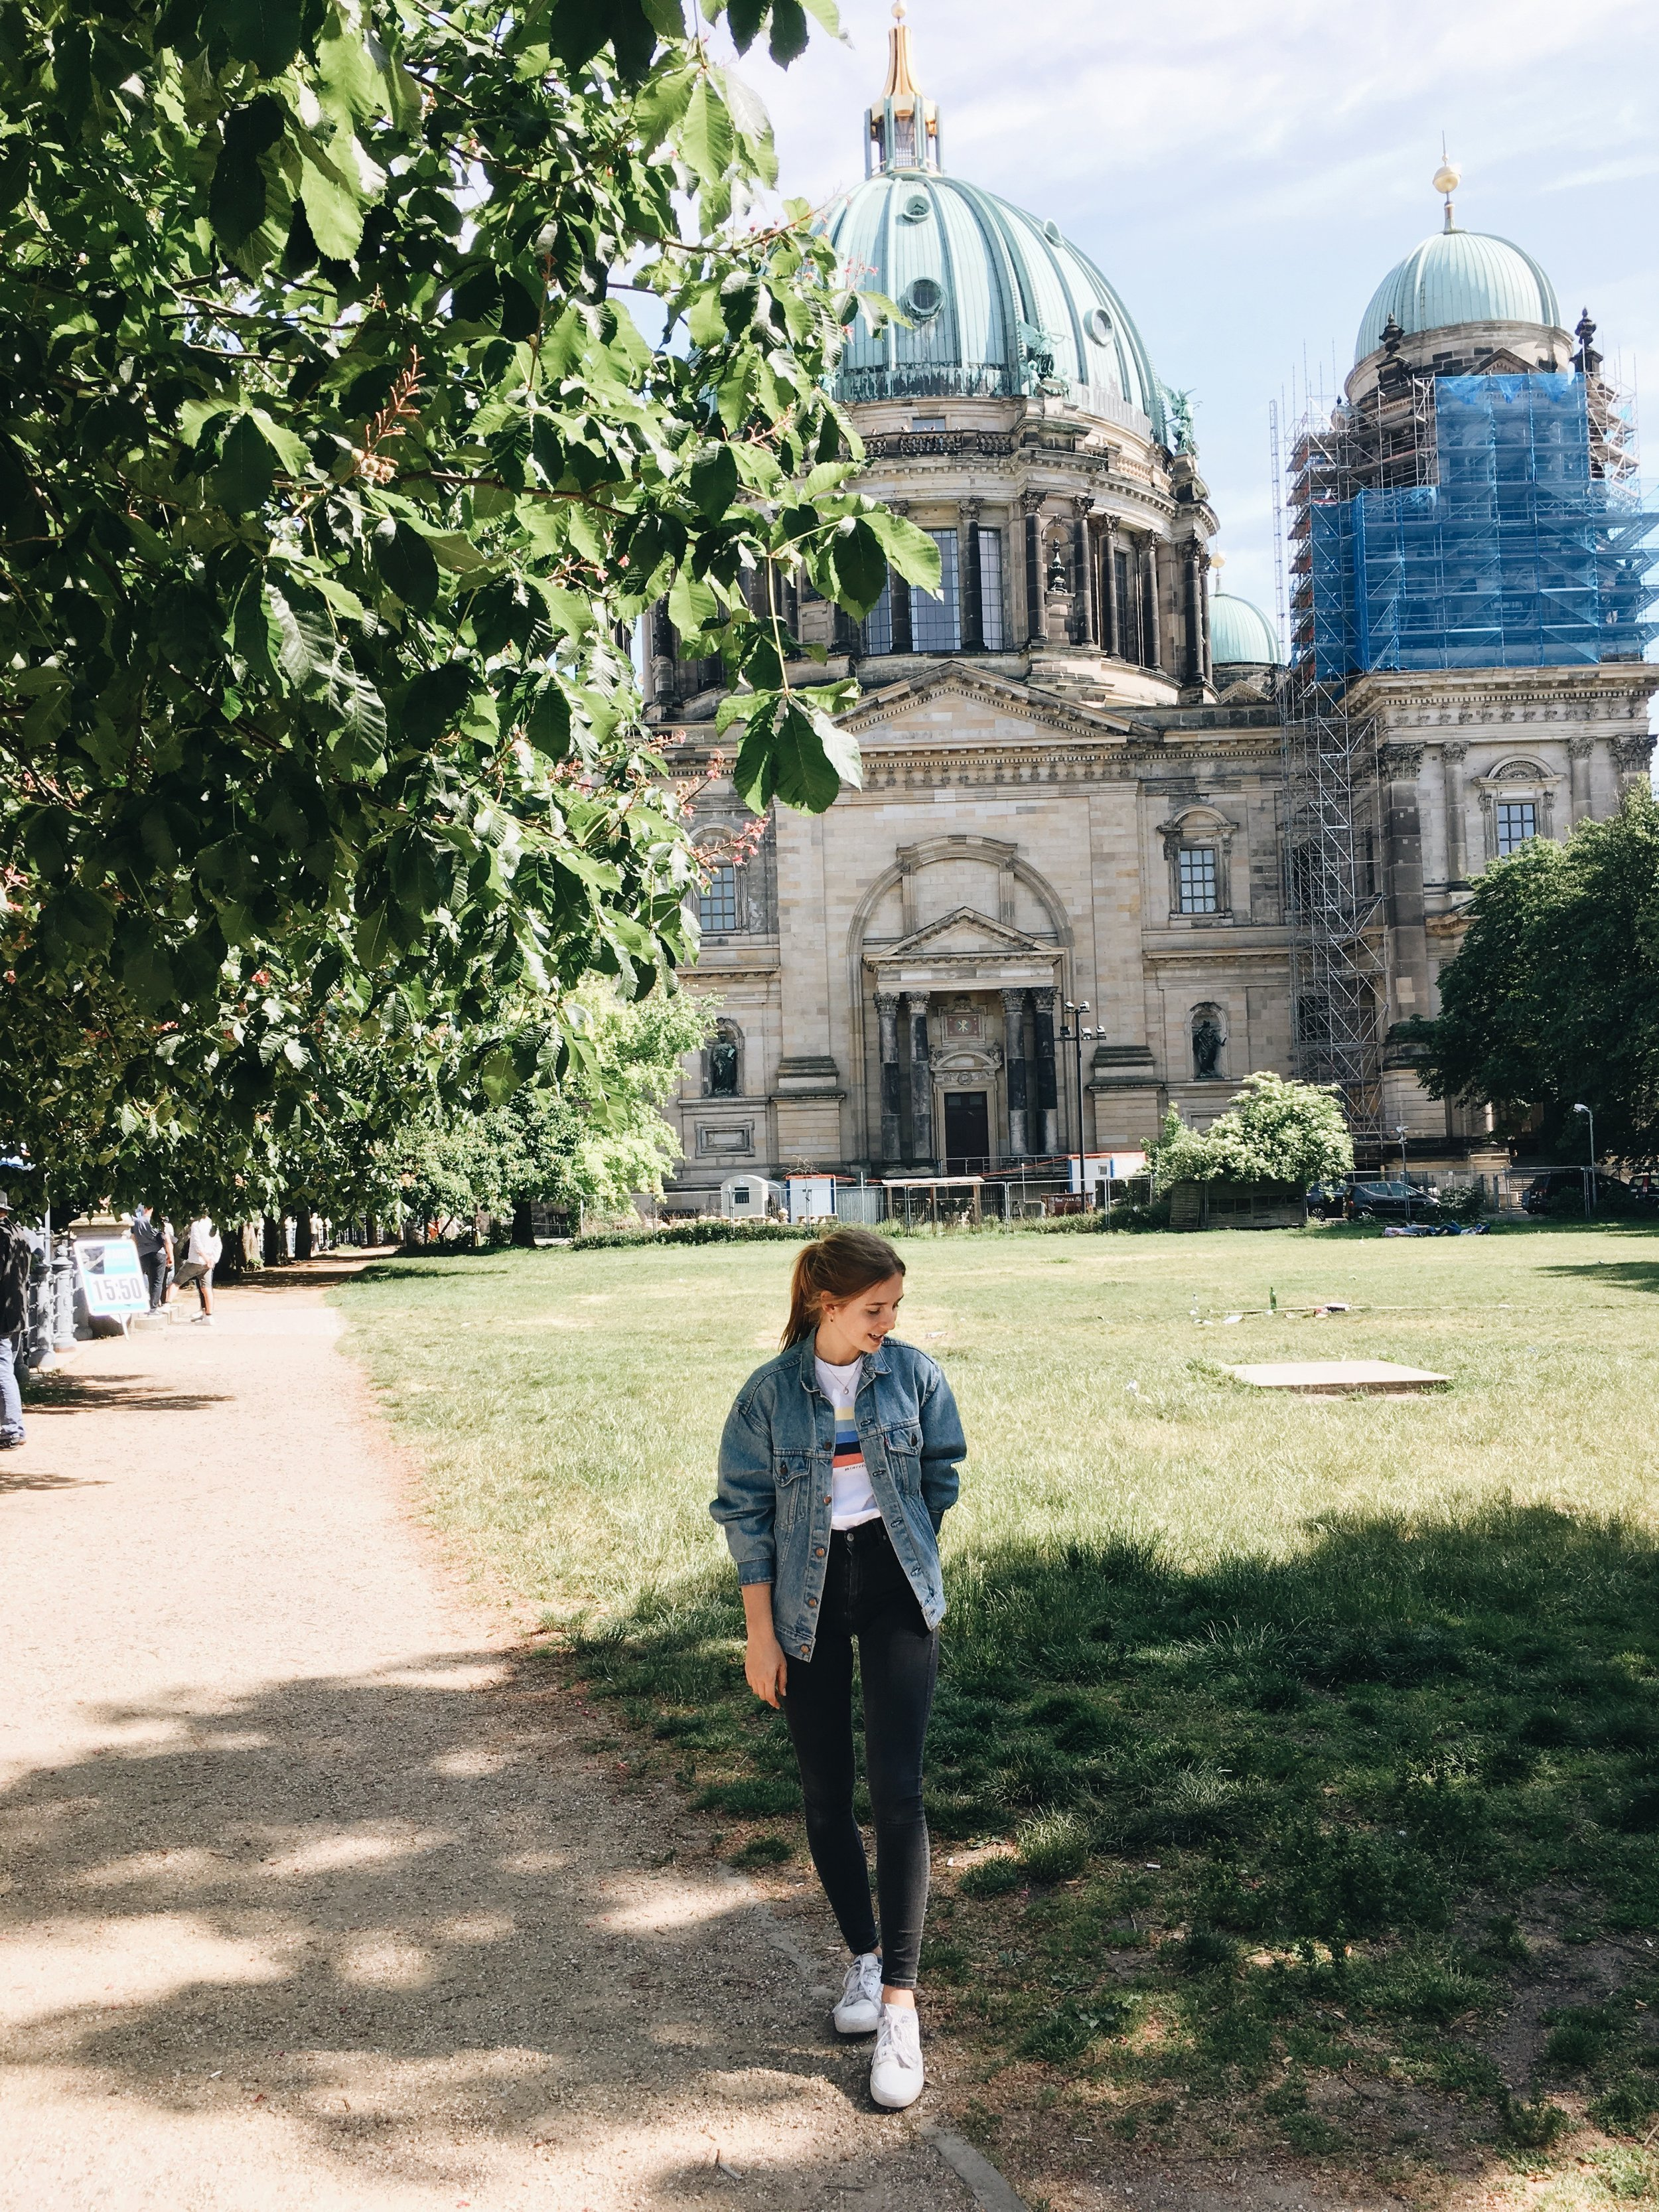 Museum Island - have a rest on the museum island and take a look at all the pretty historic buildings around